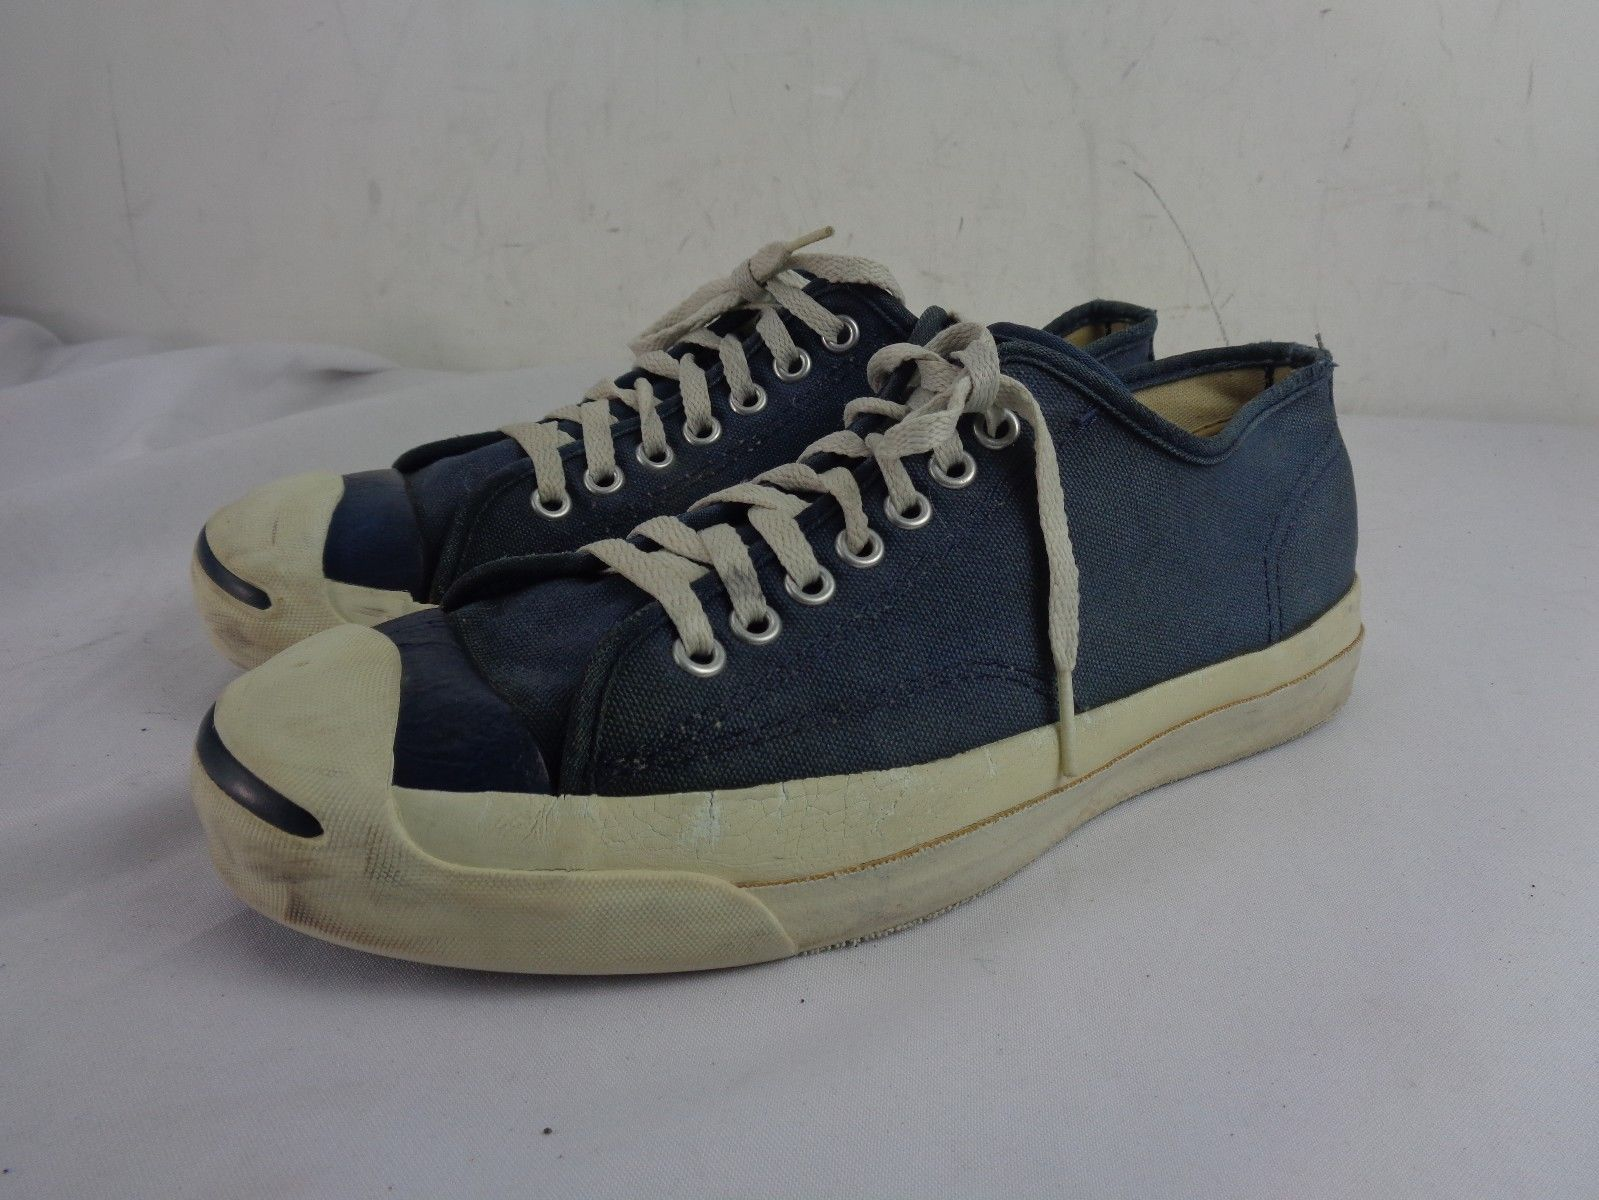 c084aa4b2e0058 Converse Jack Purcell Blue Canvas Sneakers PF USA 1960 s -70 s Vintage Sz  8.5